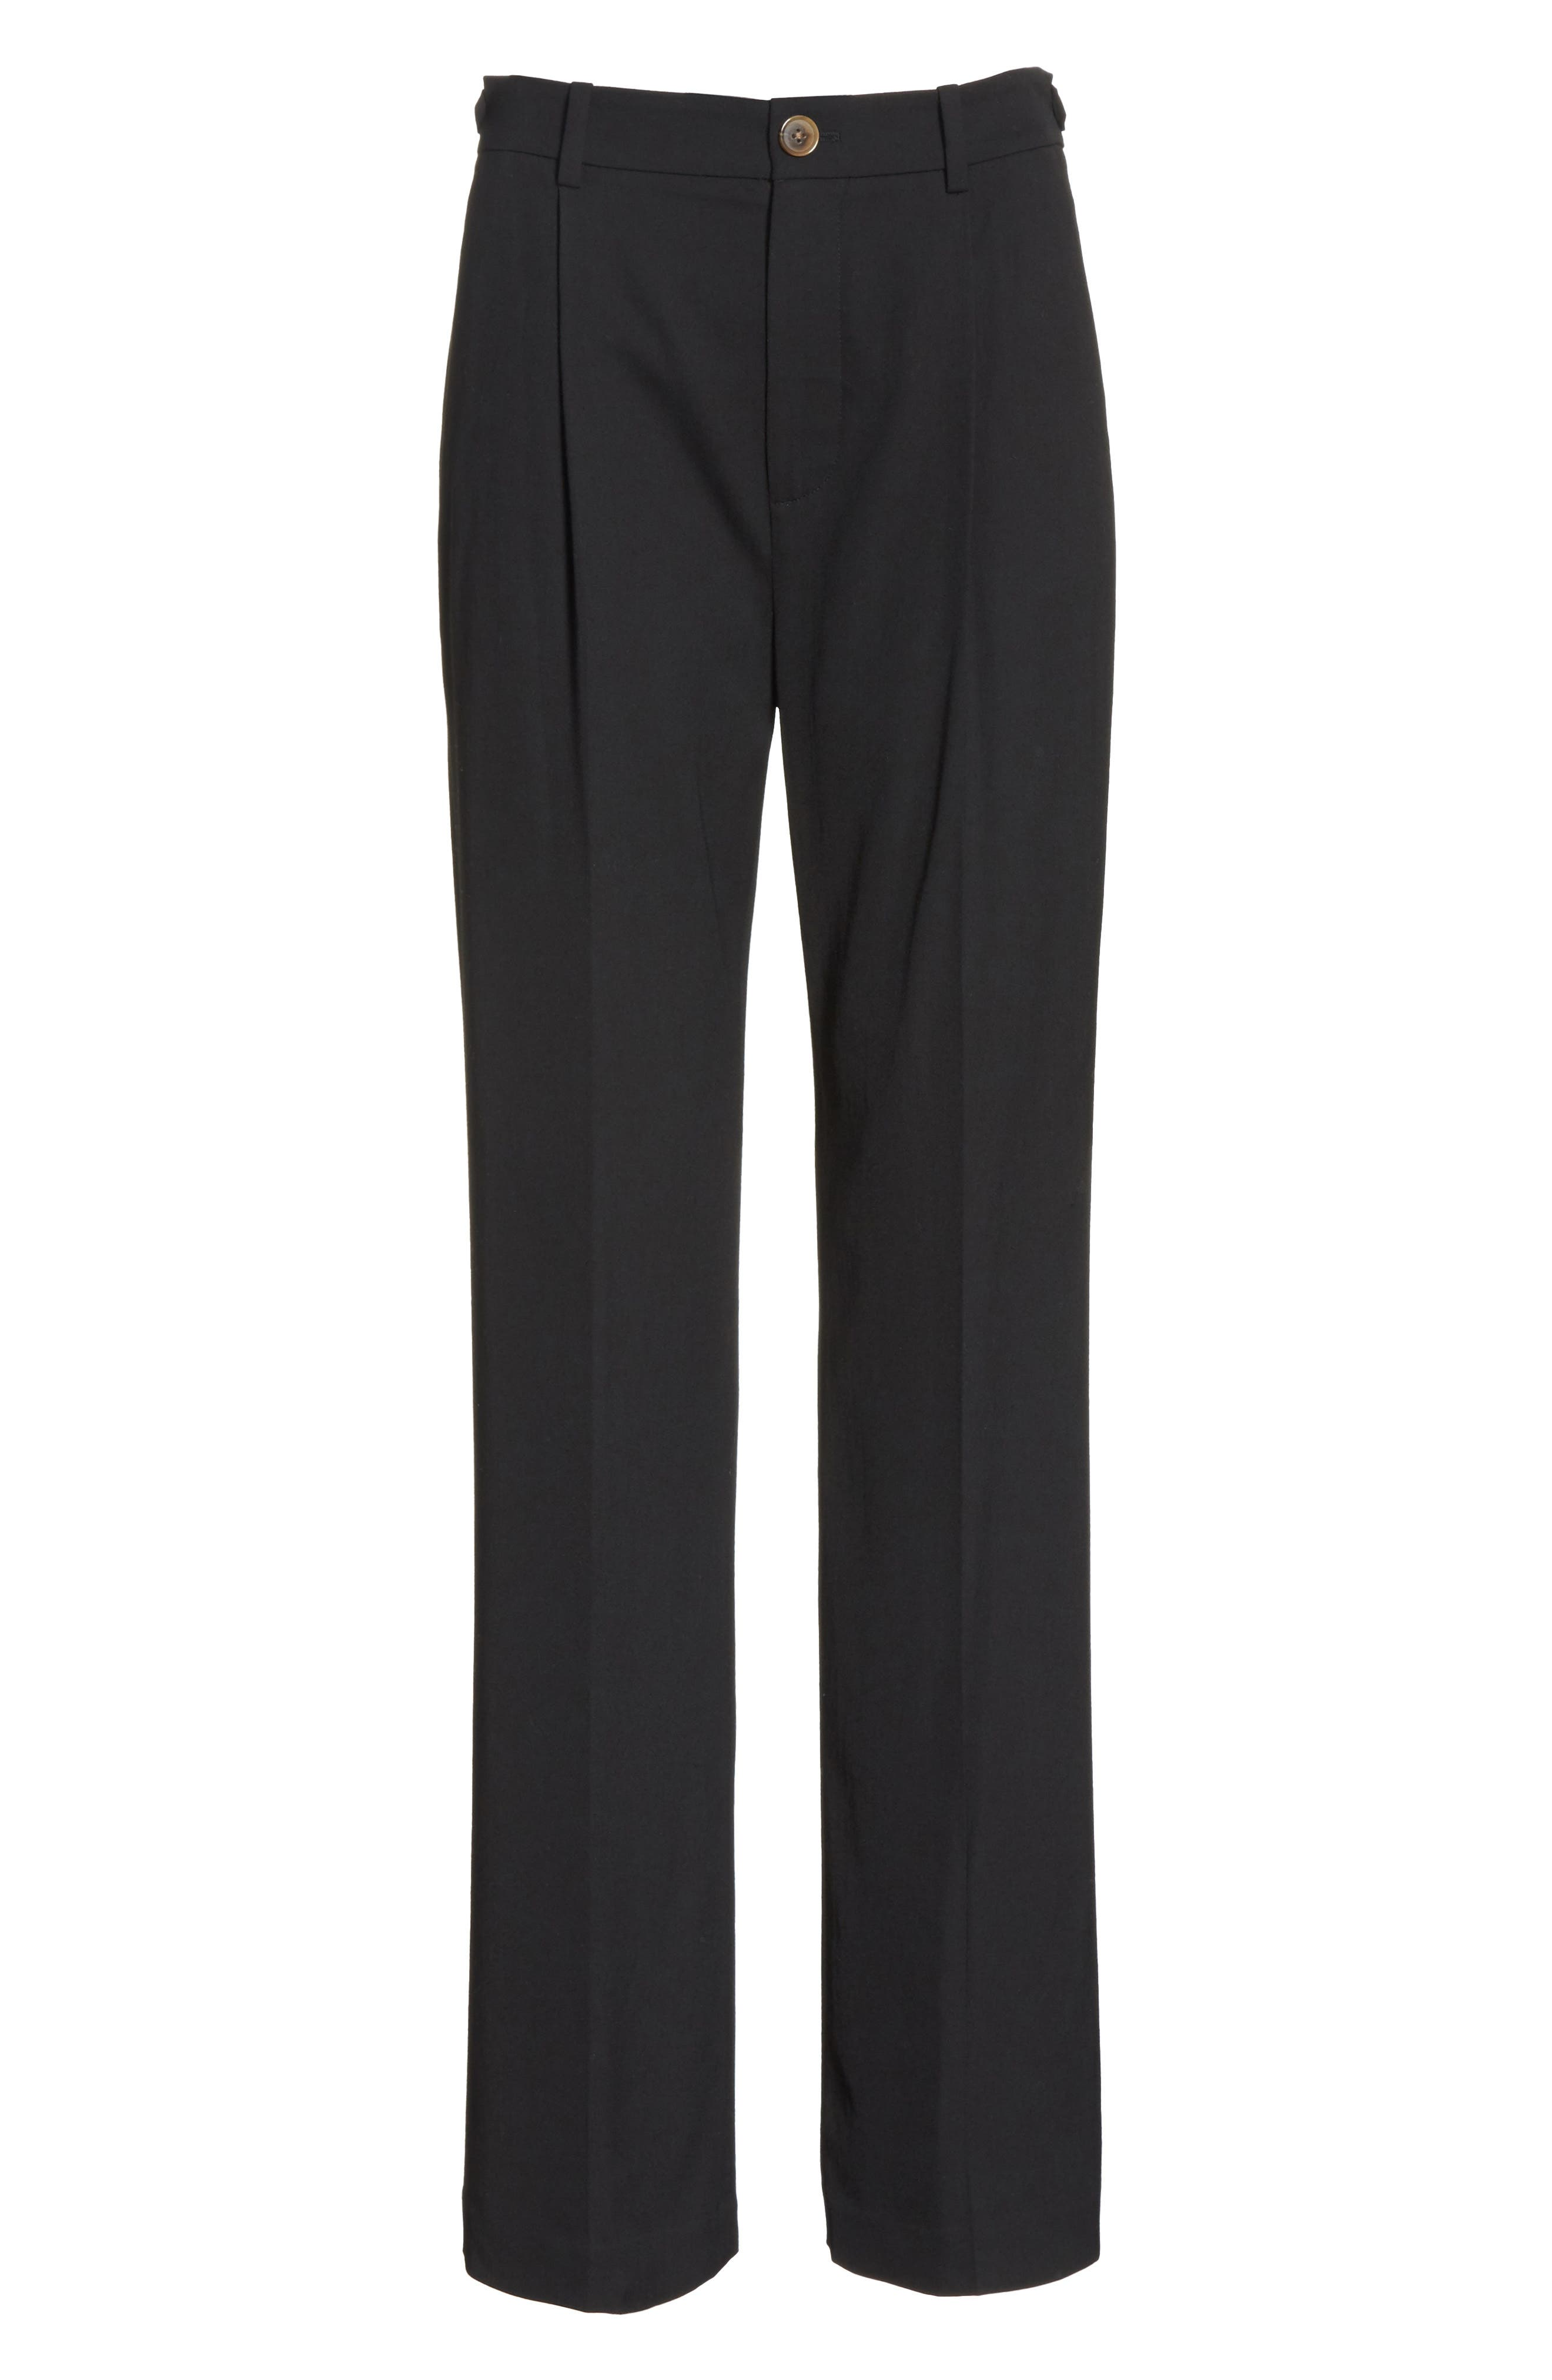 Relaxed Trousers,                             Alternate thumbnail 7, color,                             001